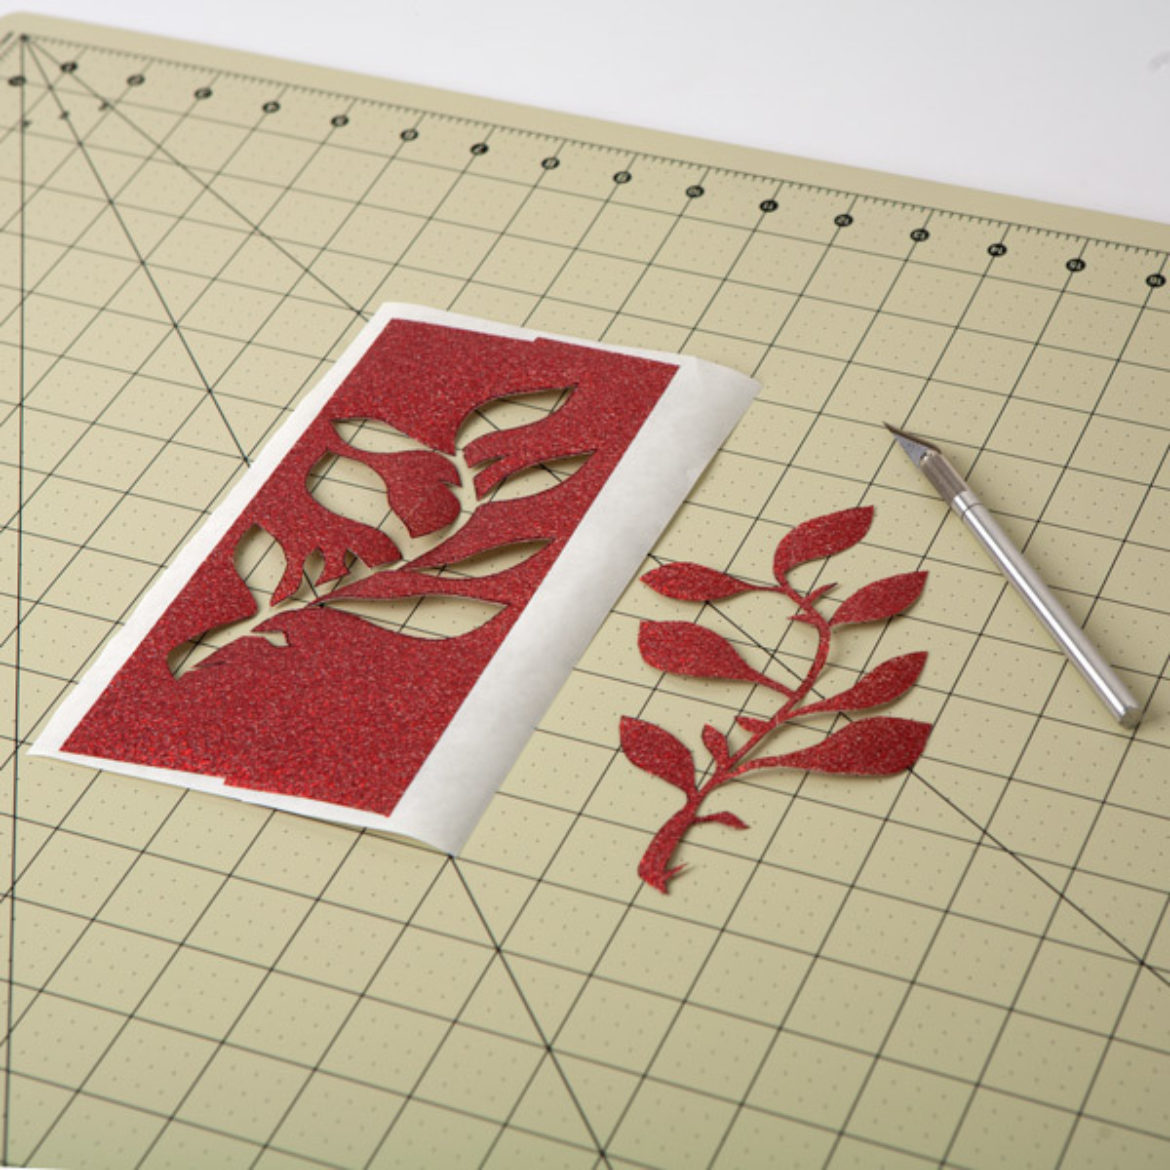 floral design traced in the previous step cut out using a craft knife